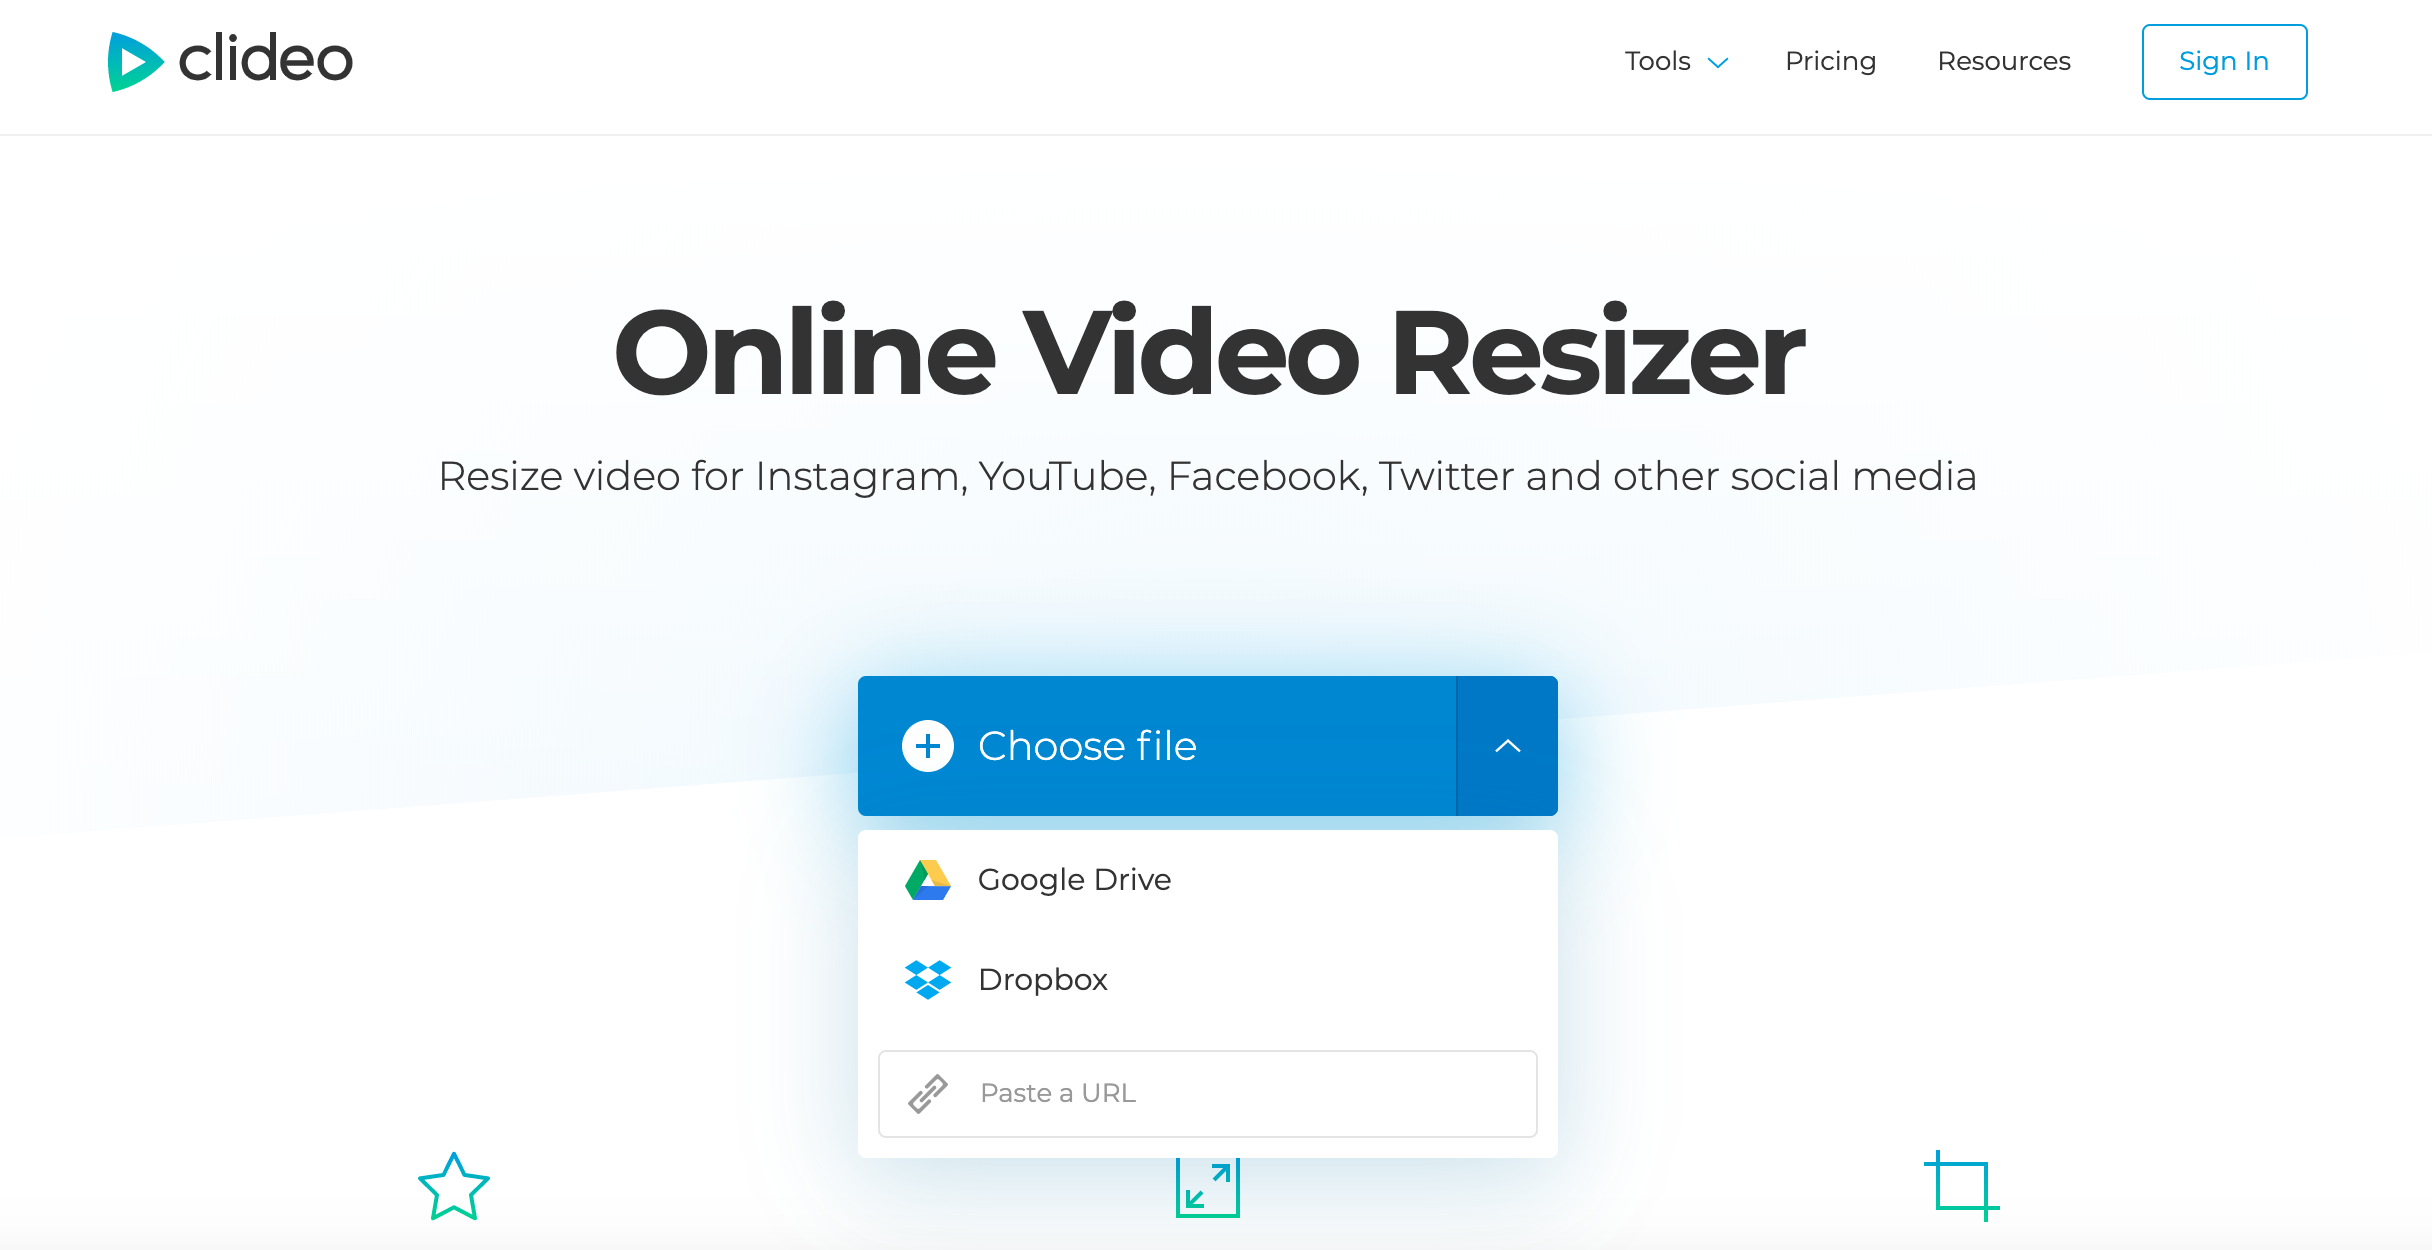 Add video to make it fit a Facebook size